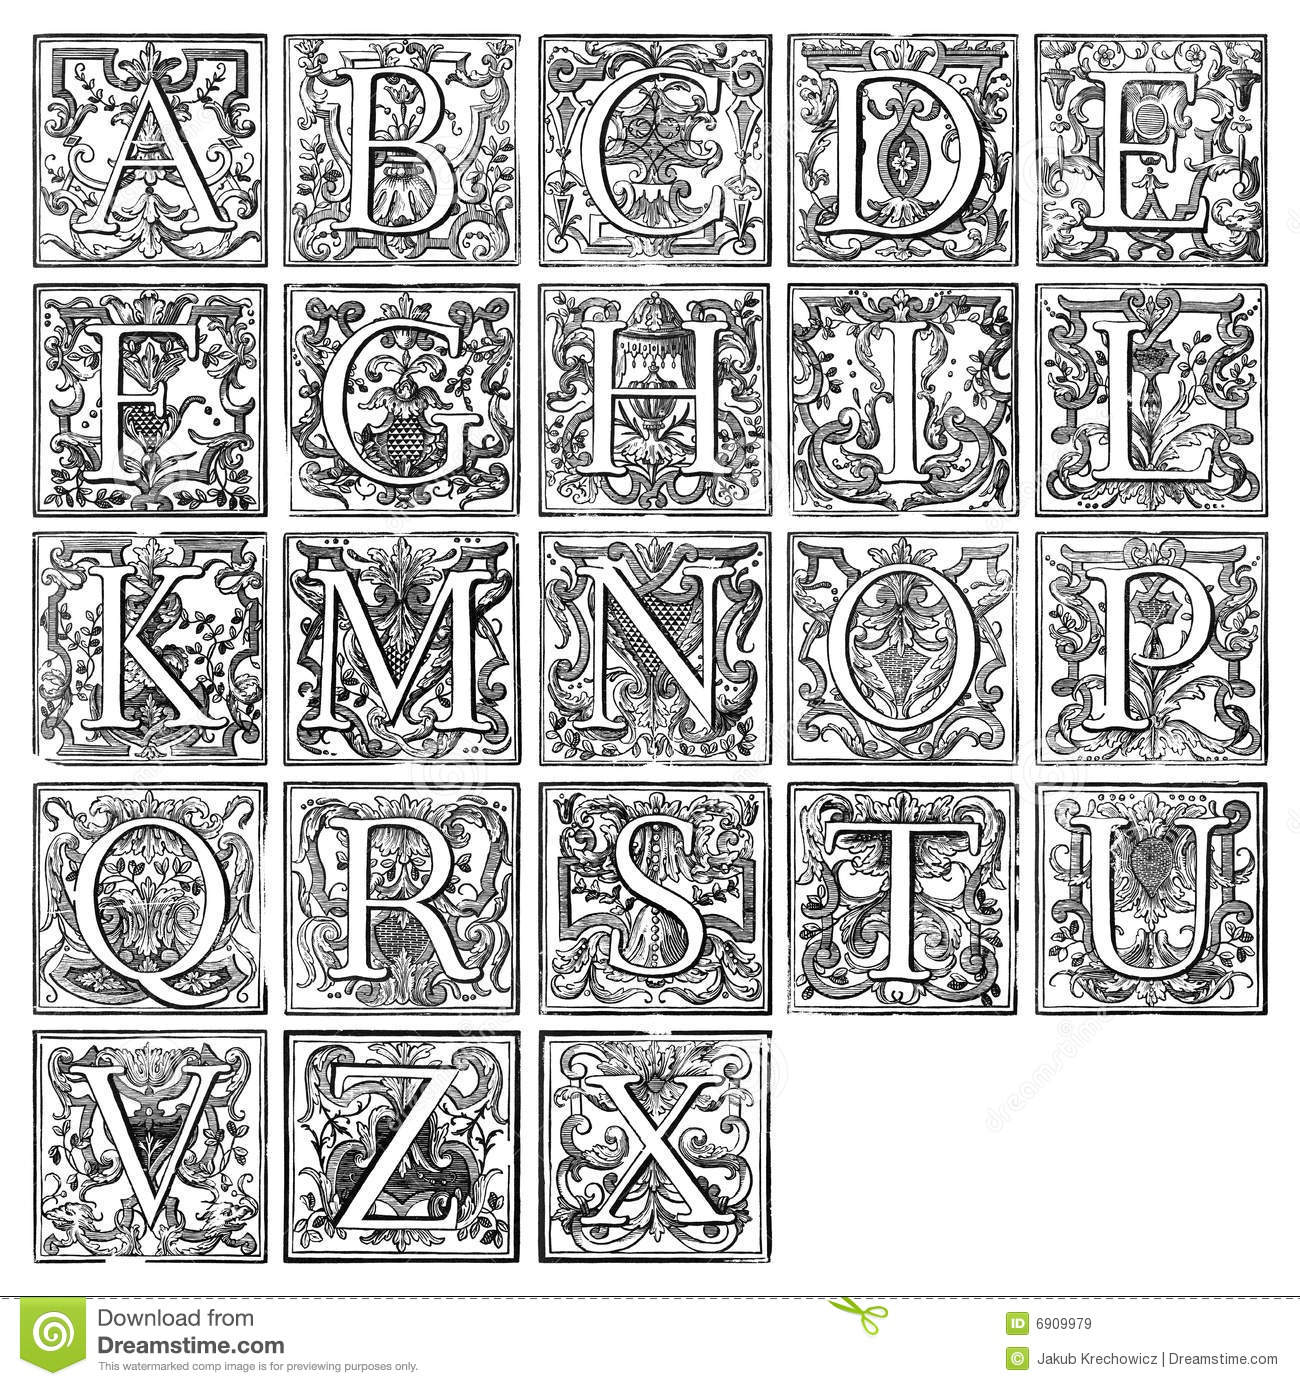 Illuminated letters alphabet template search results for Illuminated alphabet templates